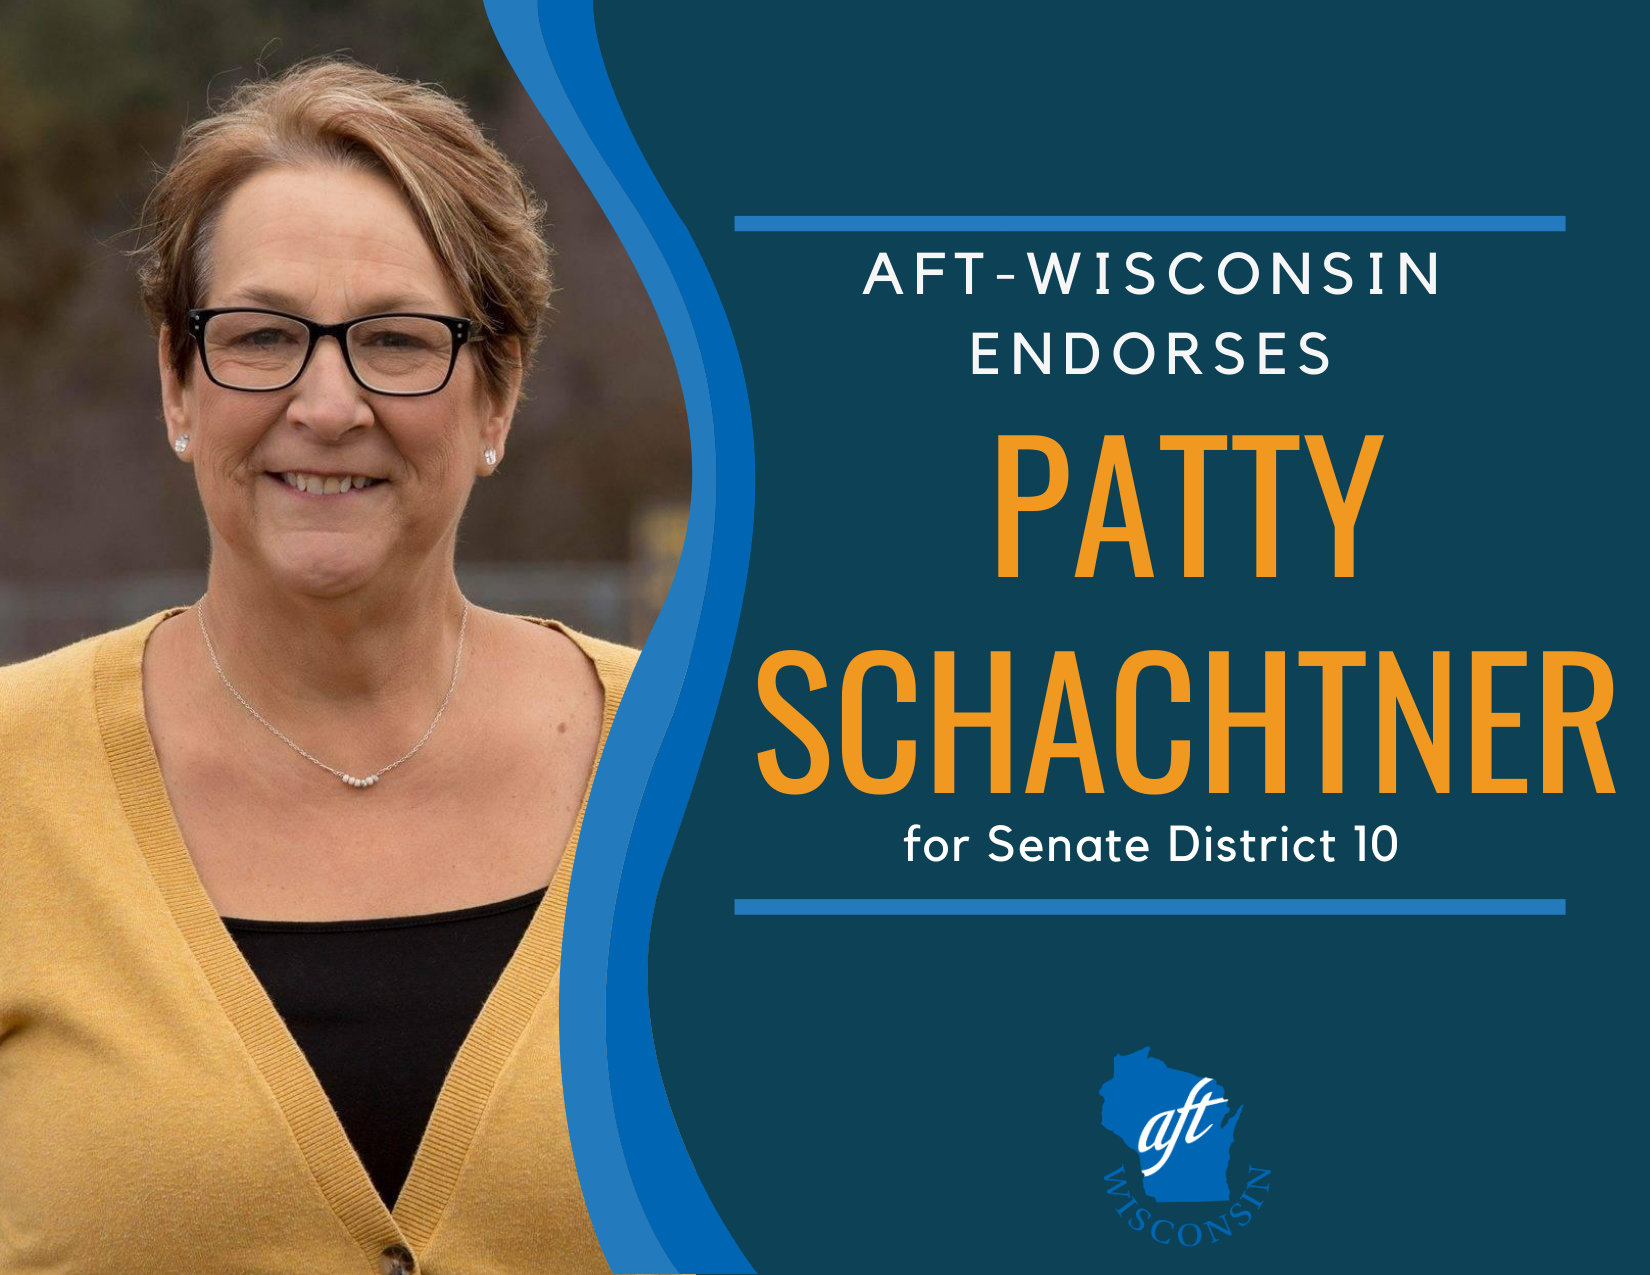 SD 10: Patty Schachtner